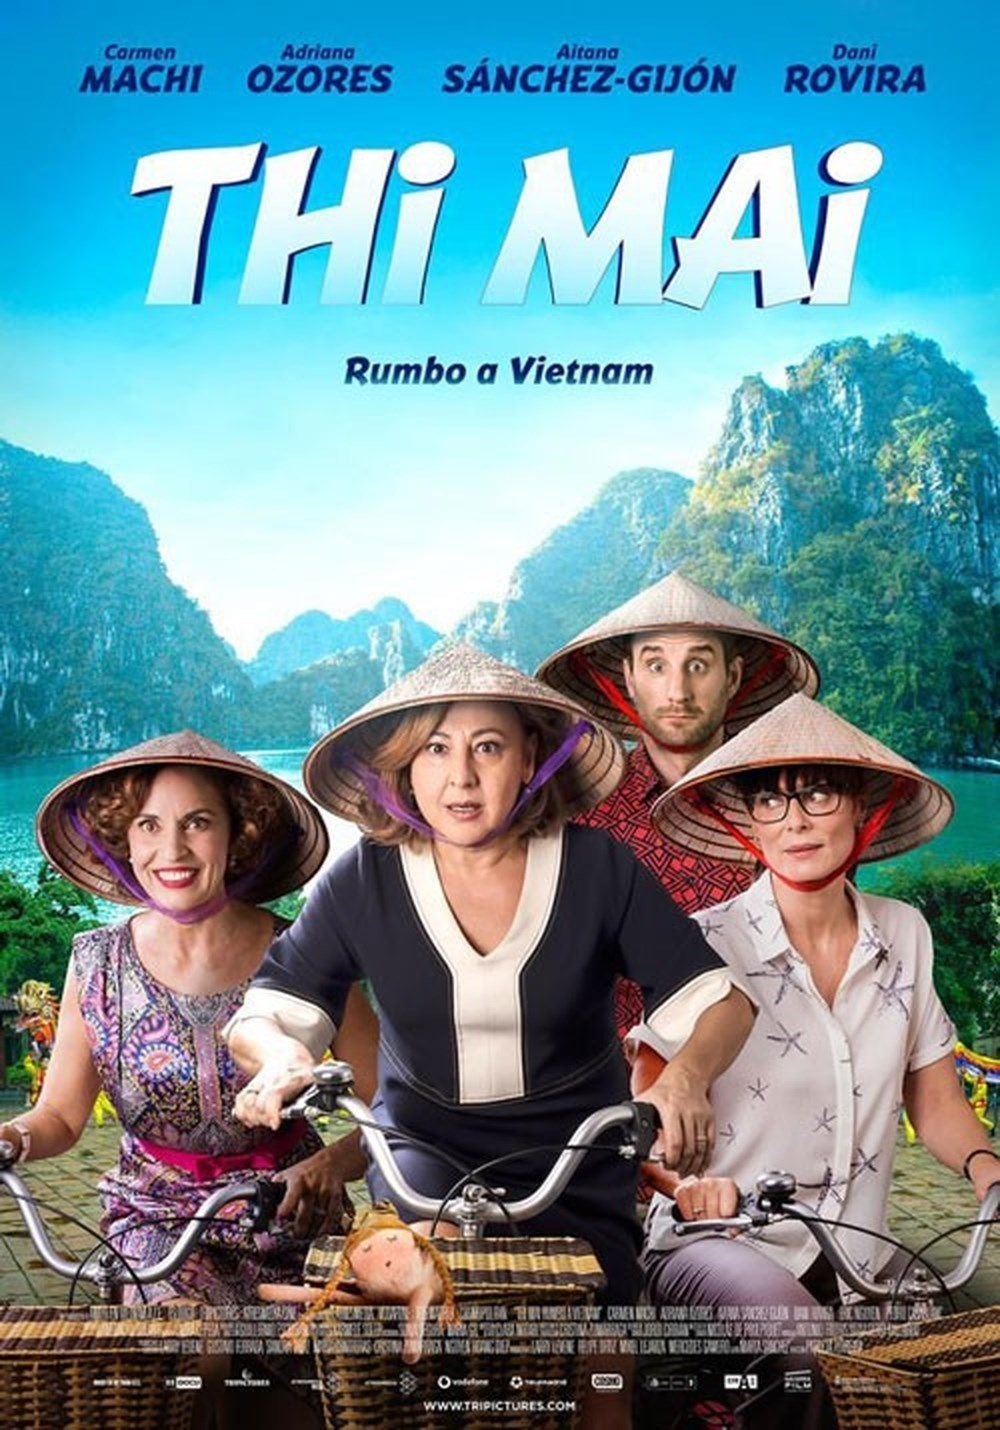 Poster phim Thi Mai, rumbo a Vietnam. Ảnh: tripictures.com